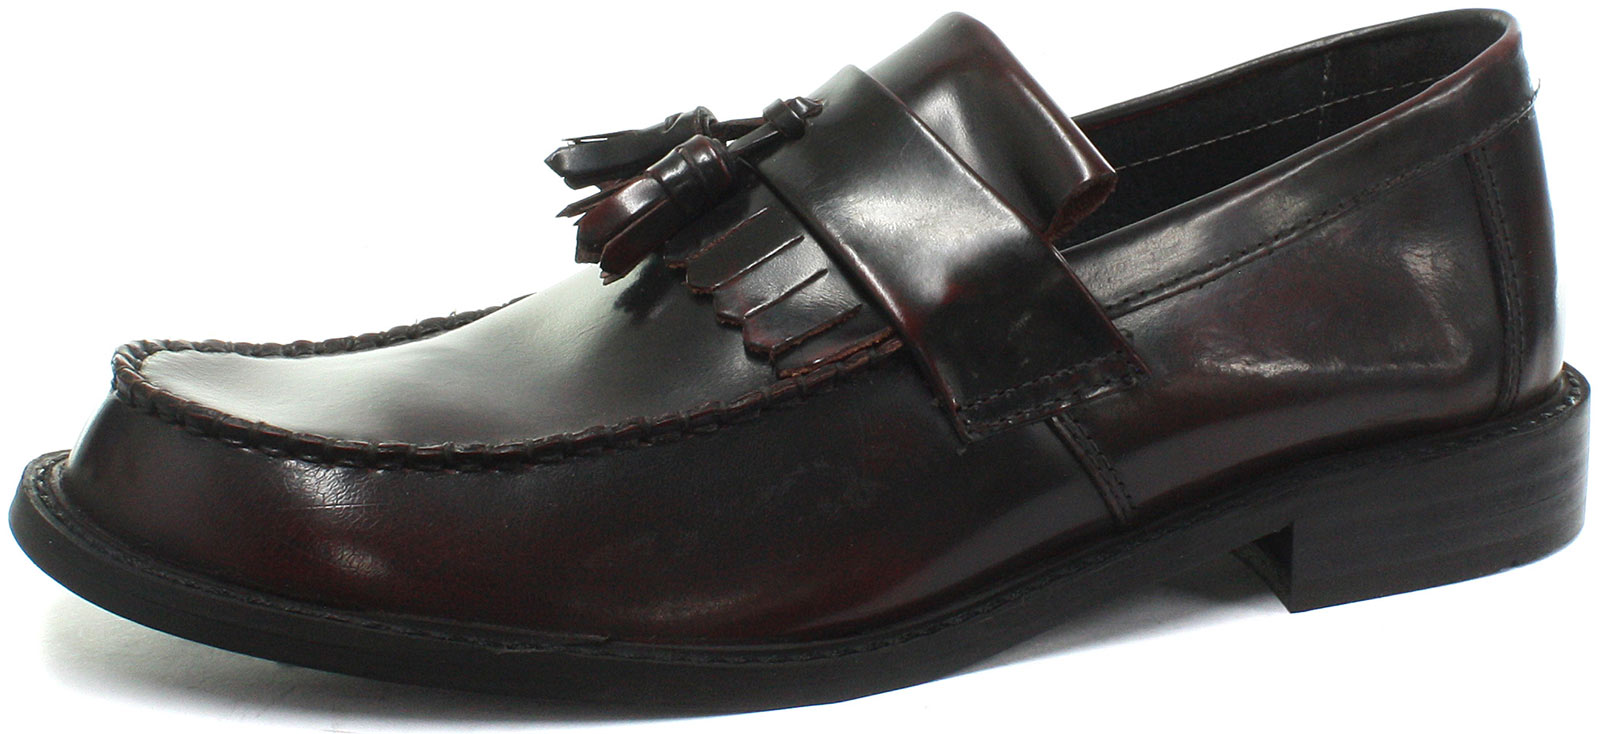 Roamers Toggle Saddle Oxblood Loafers  Uomo Slip On Loafers Oxblood ALL SIZES AND COLOURS 475c11